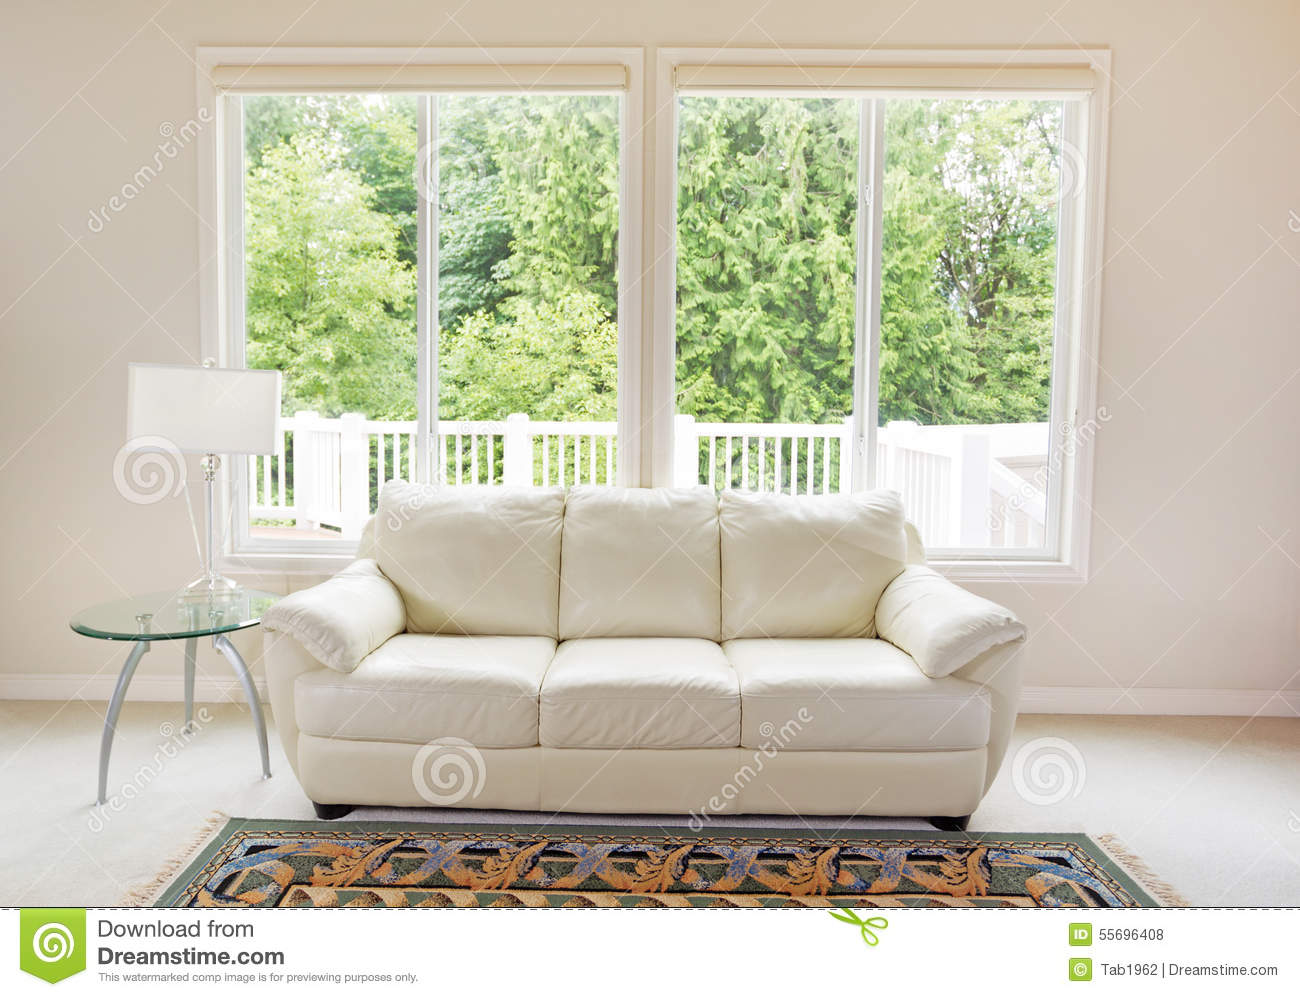 how to clean large interior windows